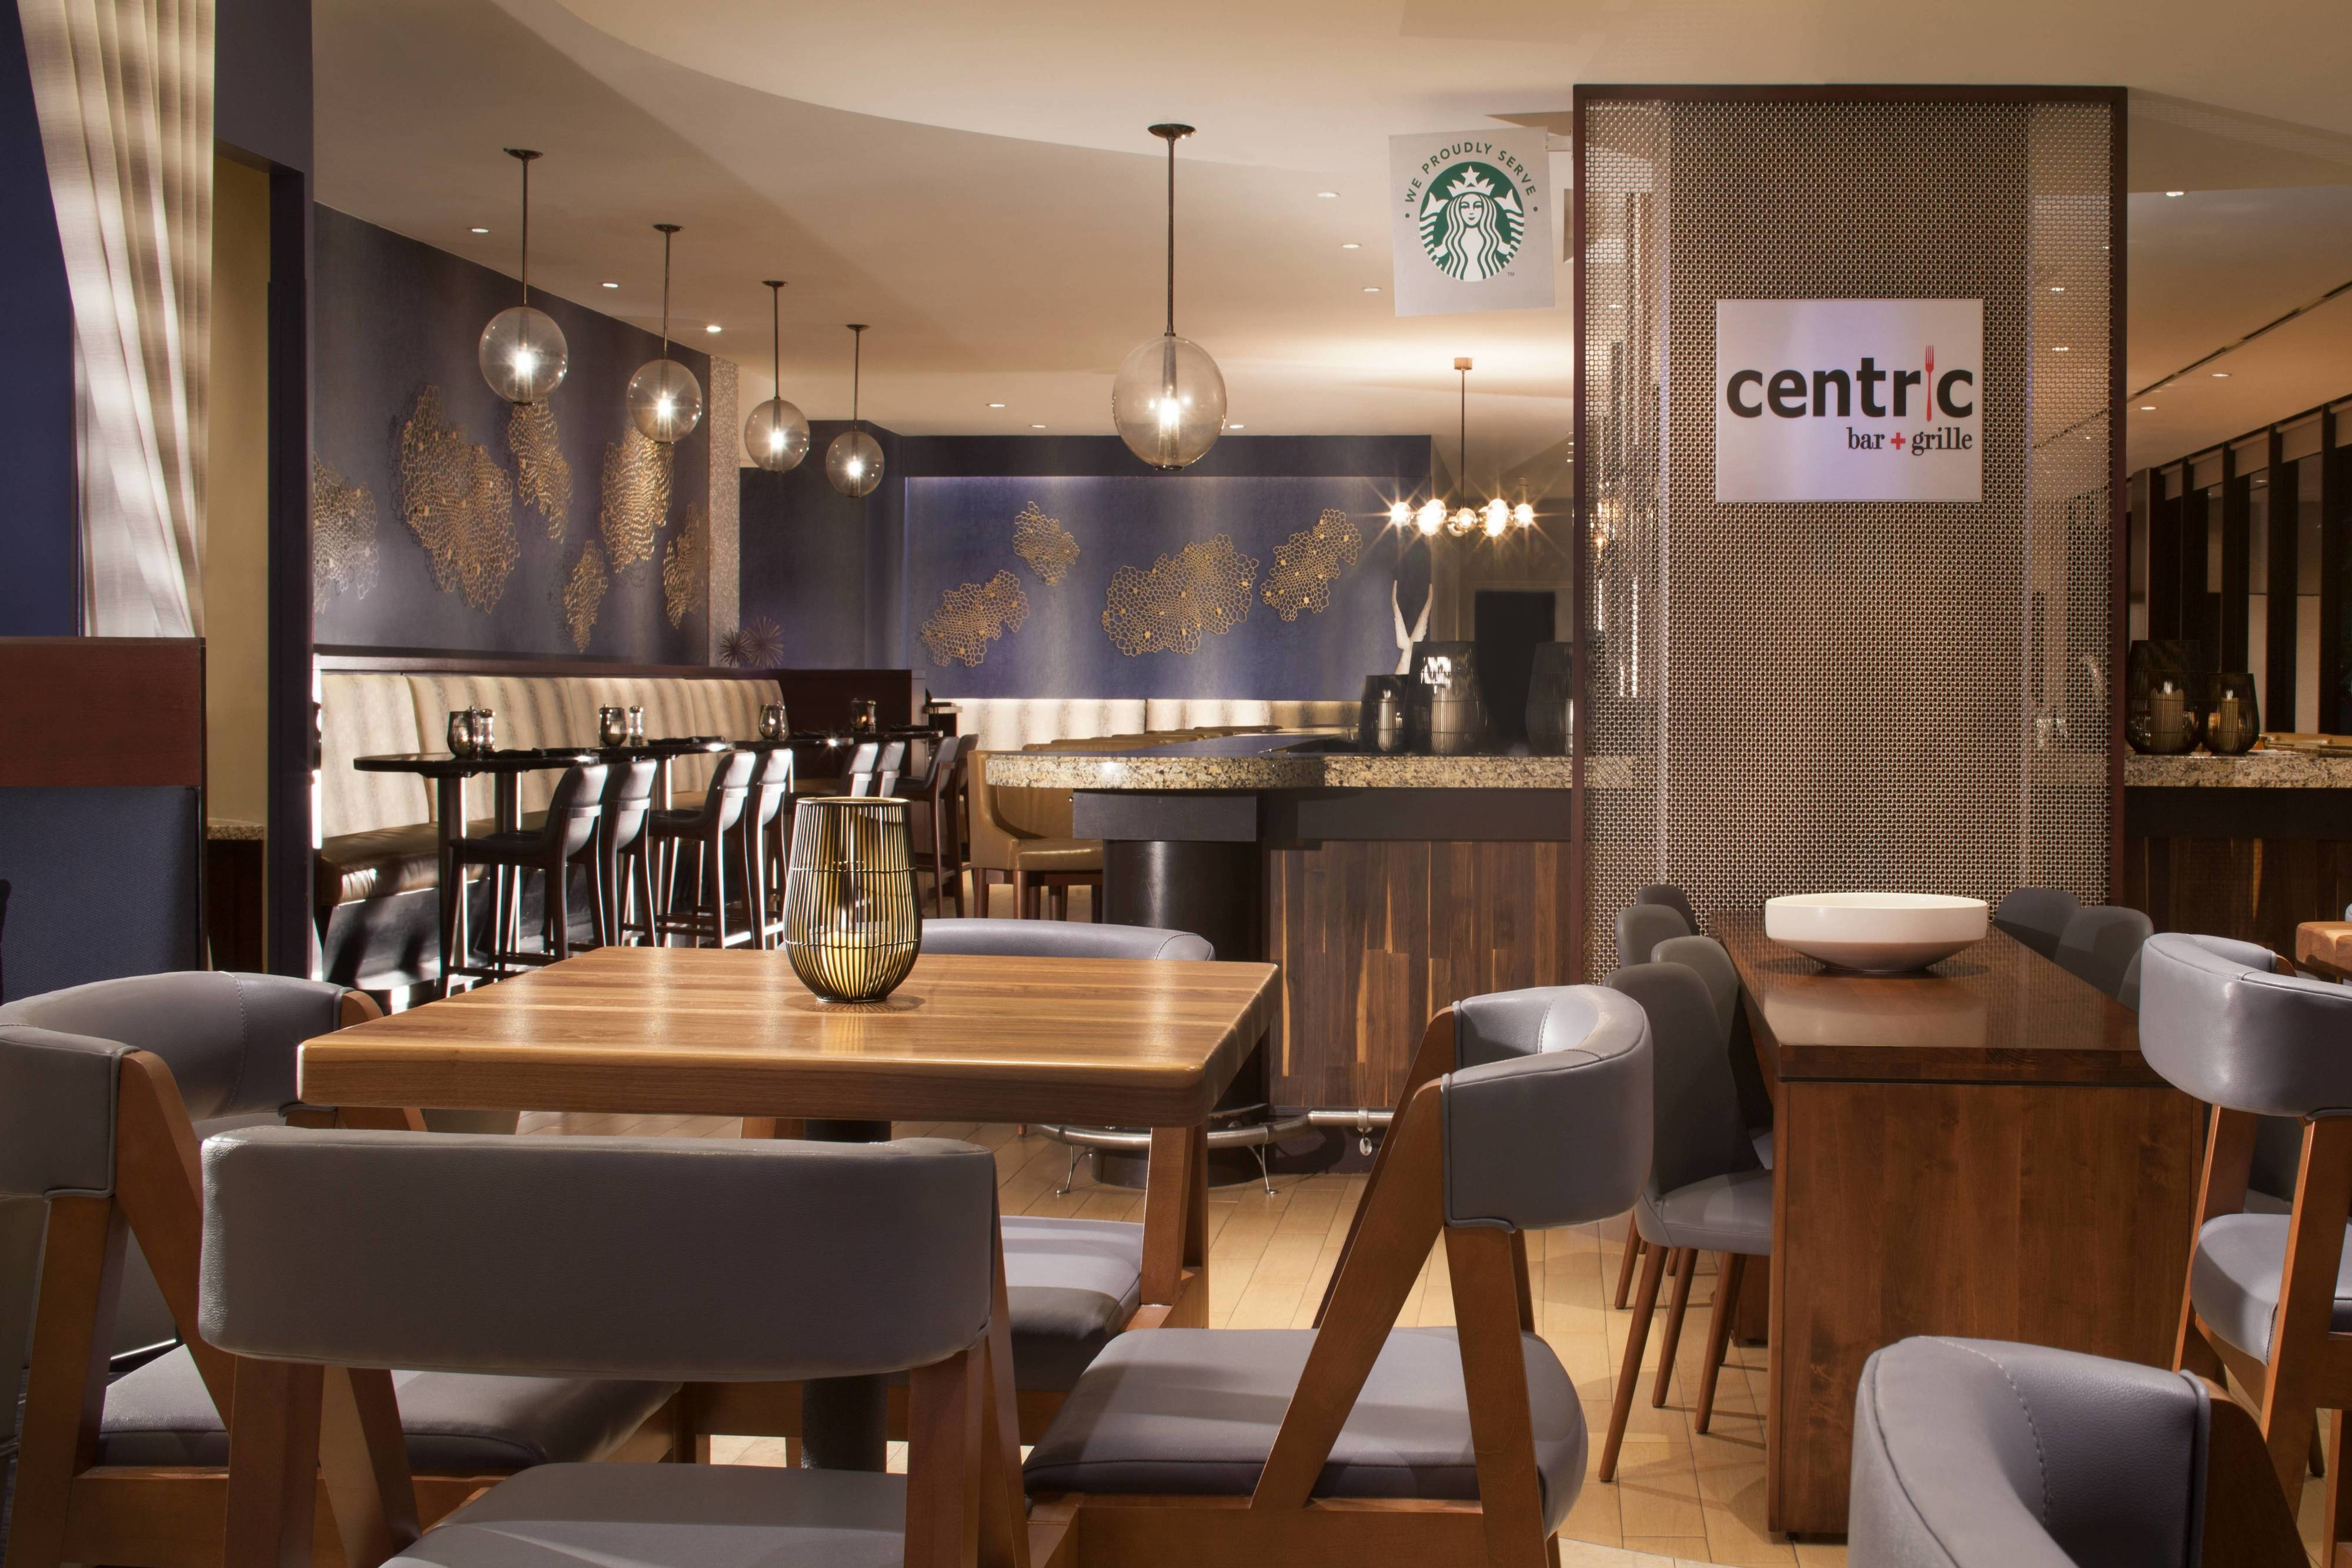 Centric Bar & Grille